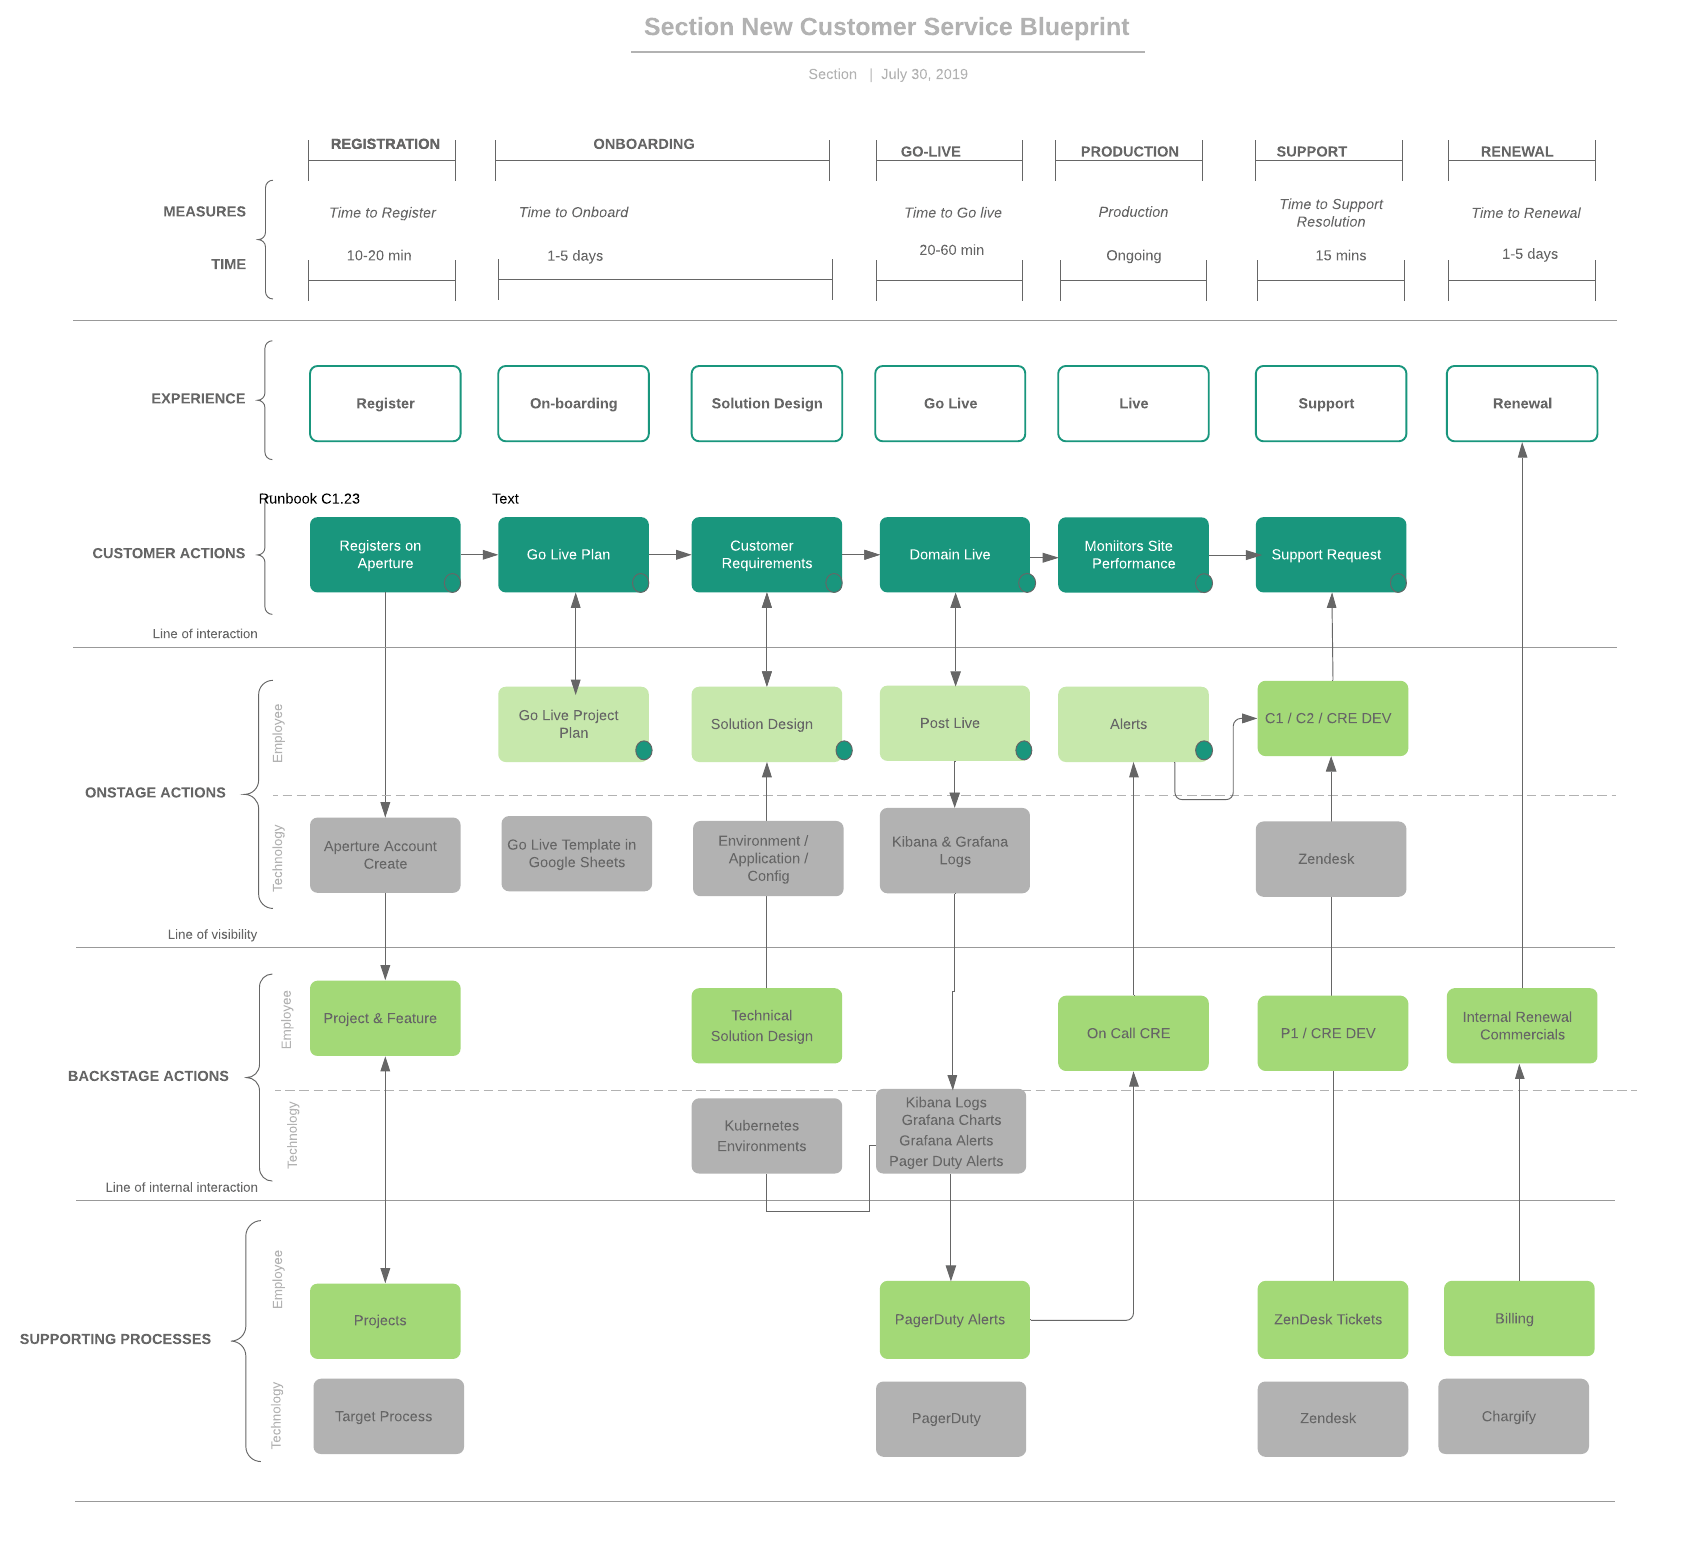 Section new customer service blueprint